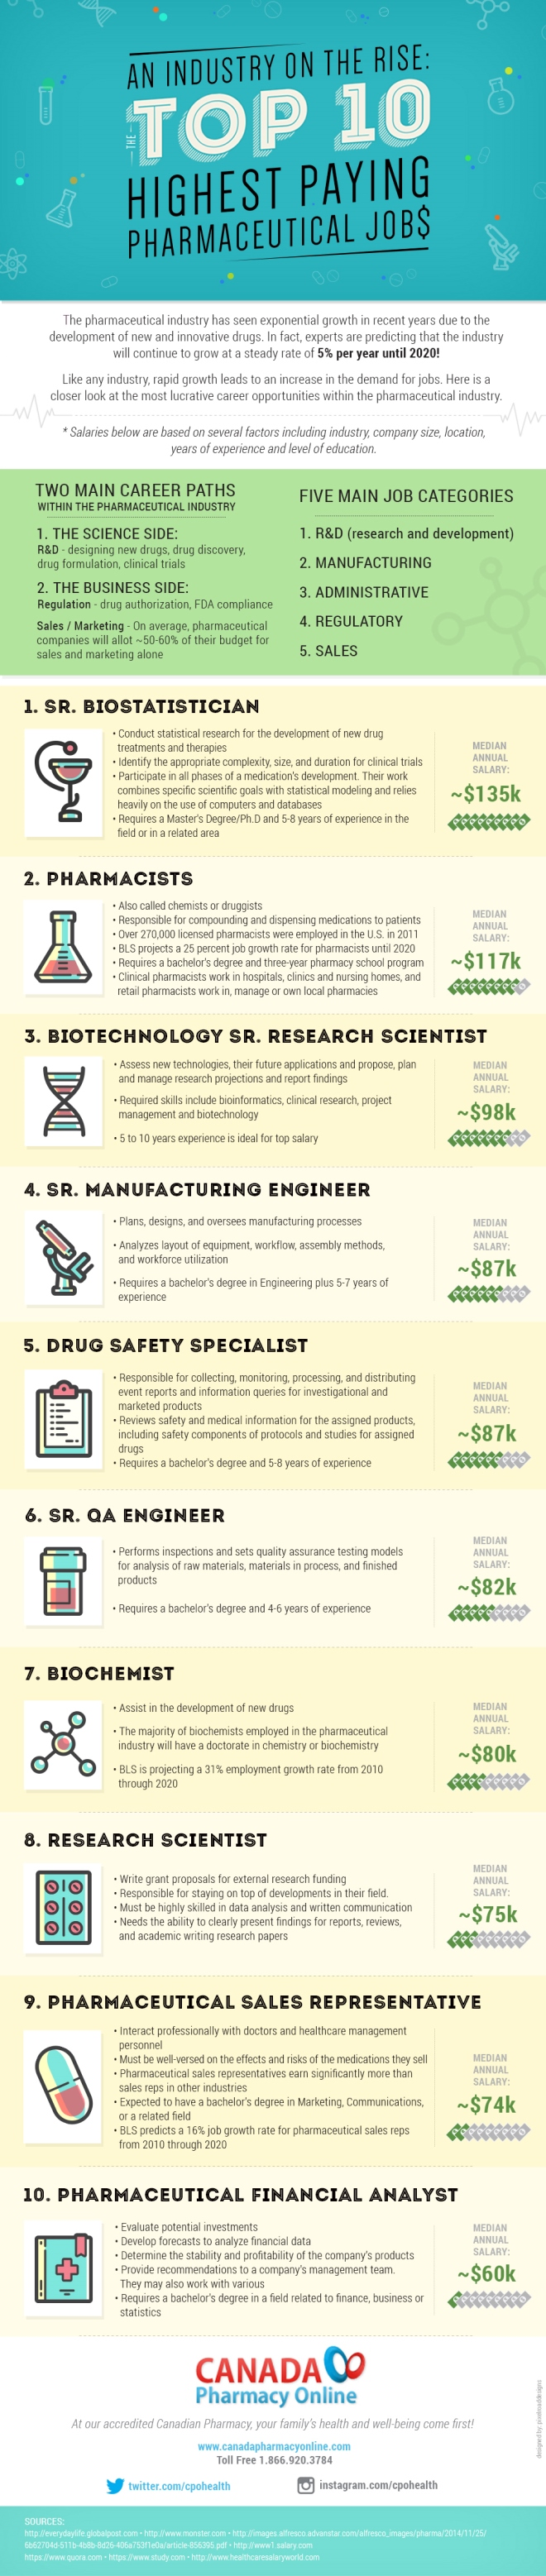 An Industry on the Rise The Top 10 Highest Paying